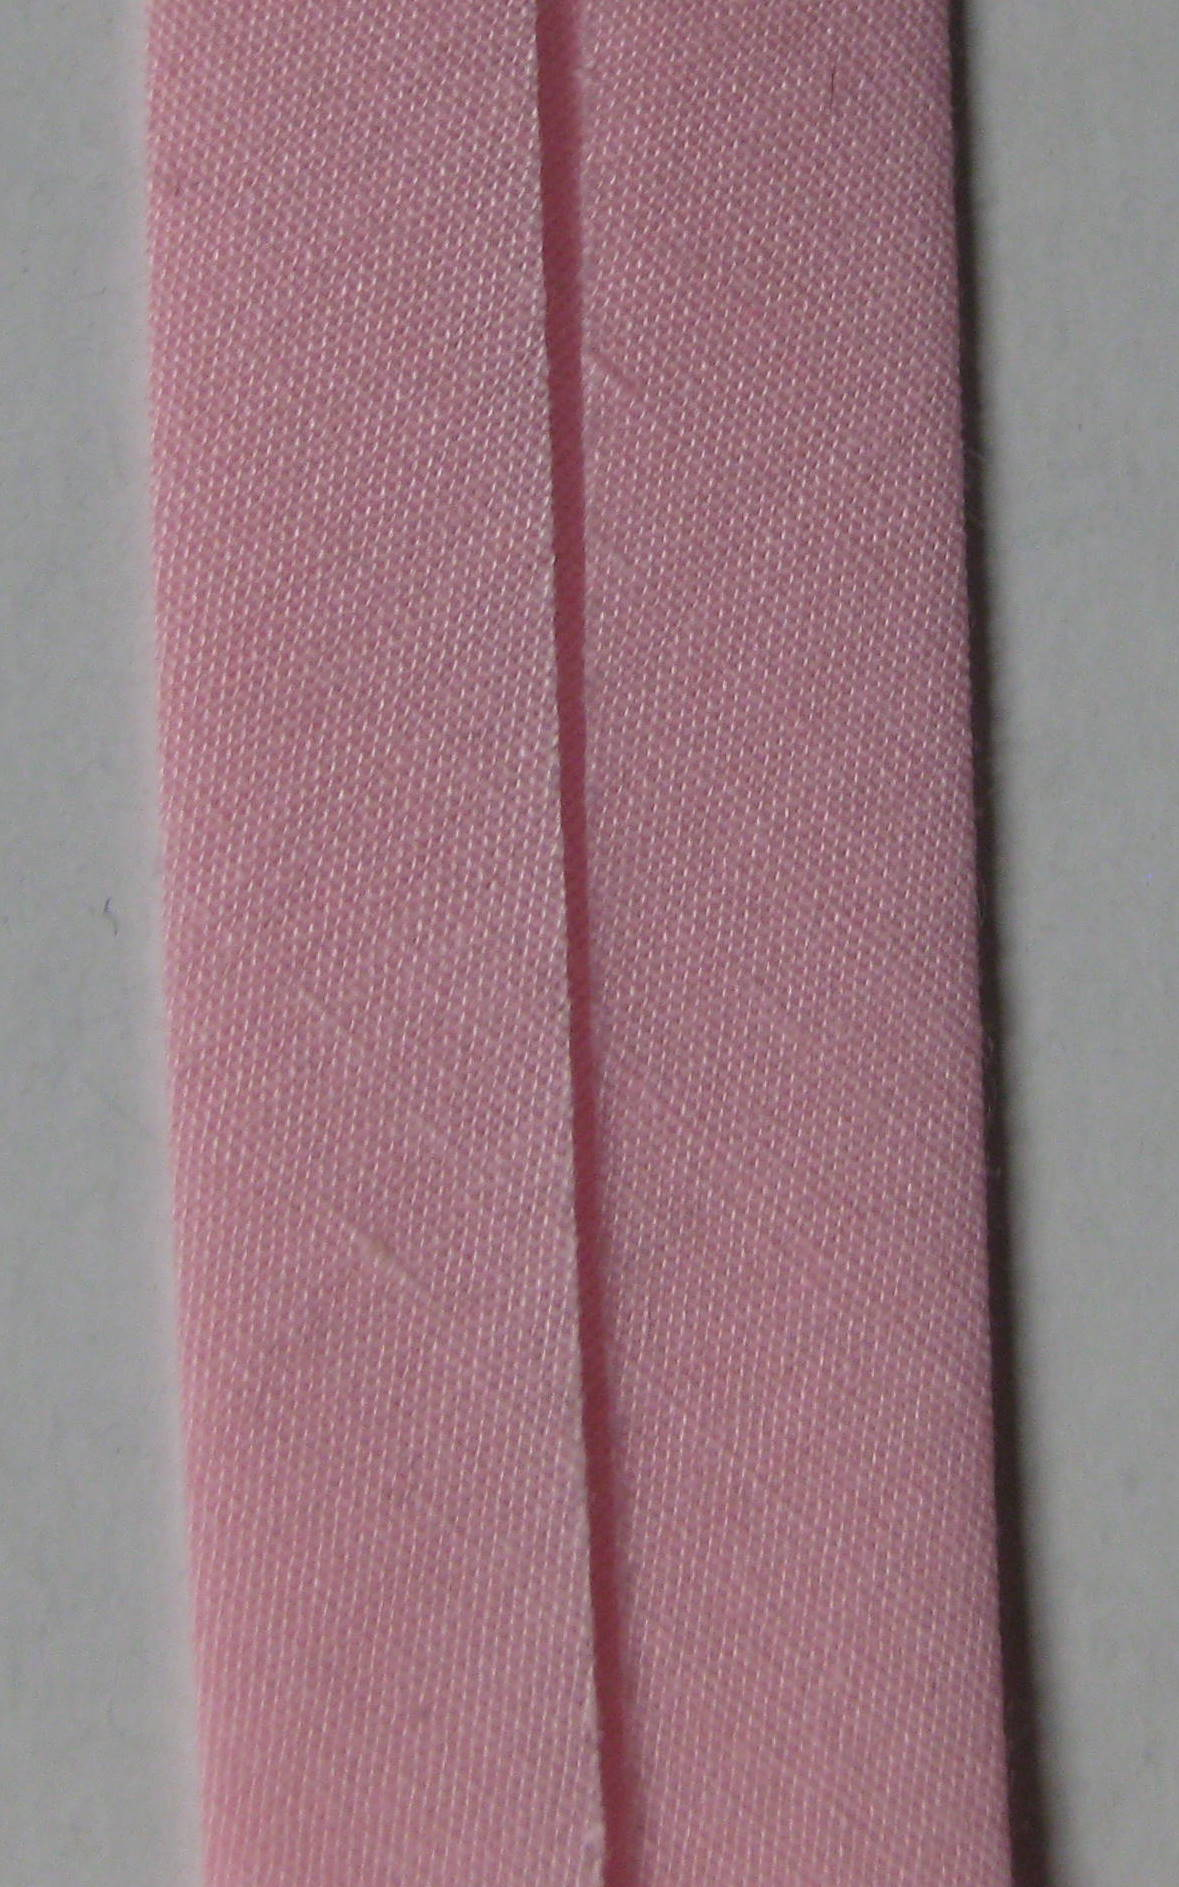 BIAS TAPE LIGHT PINK